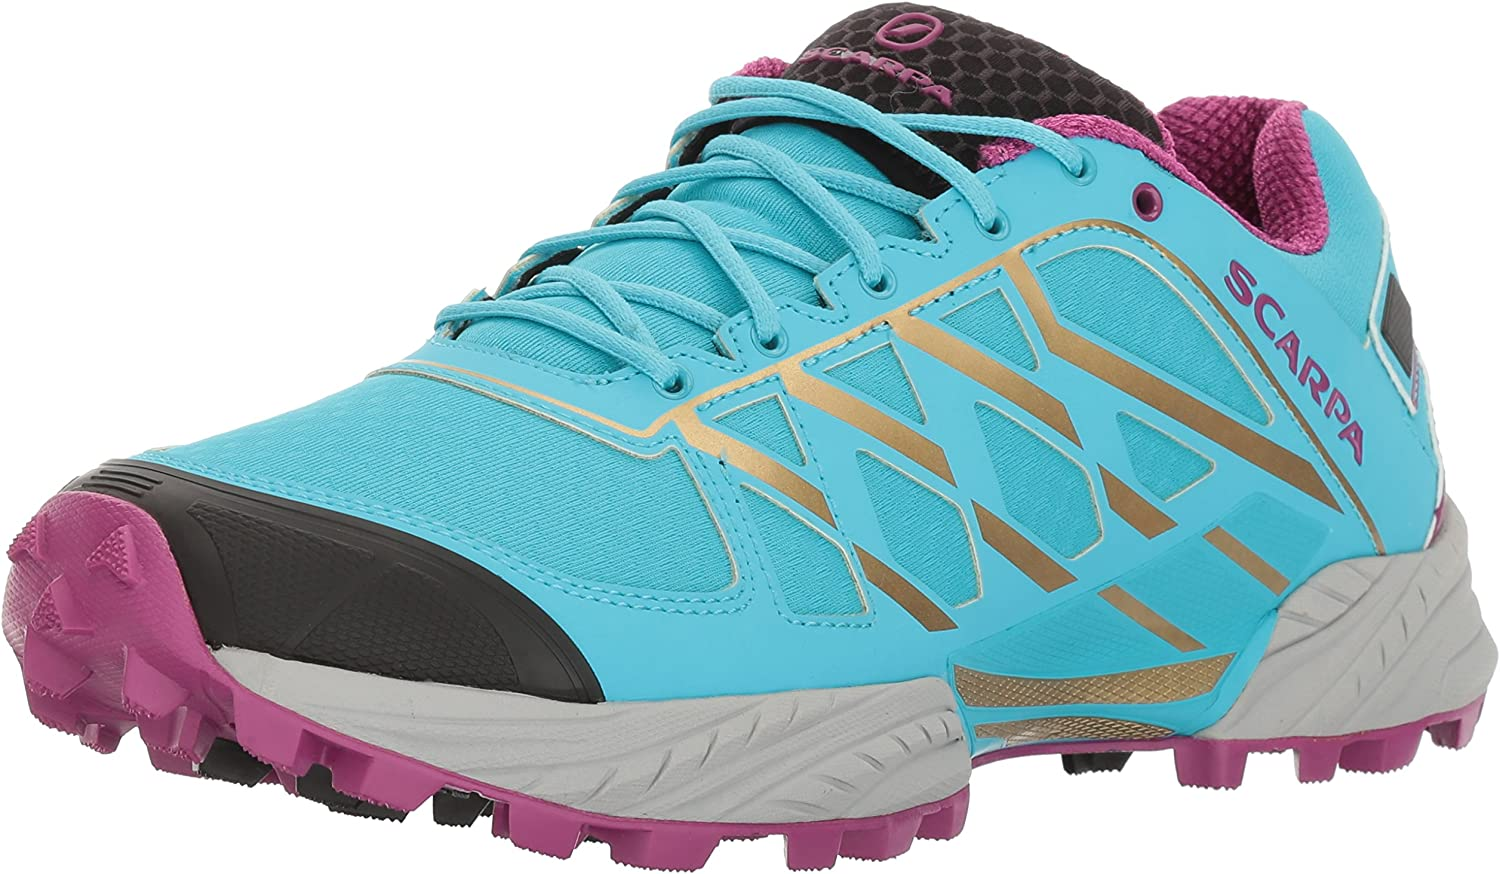 Scarpa Women s Neutron Wmn Trail Running Shoe Runner